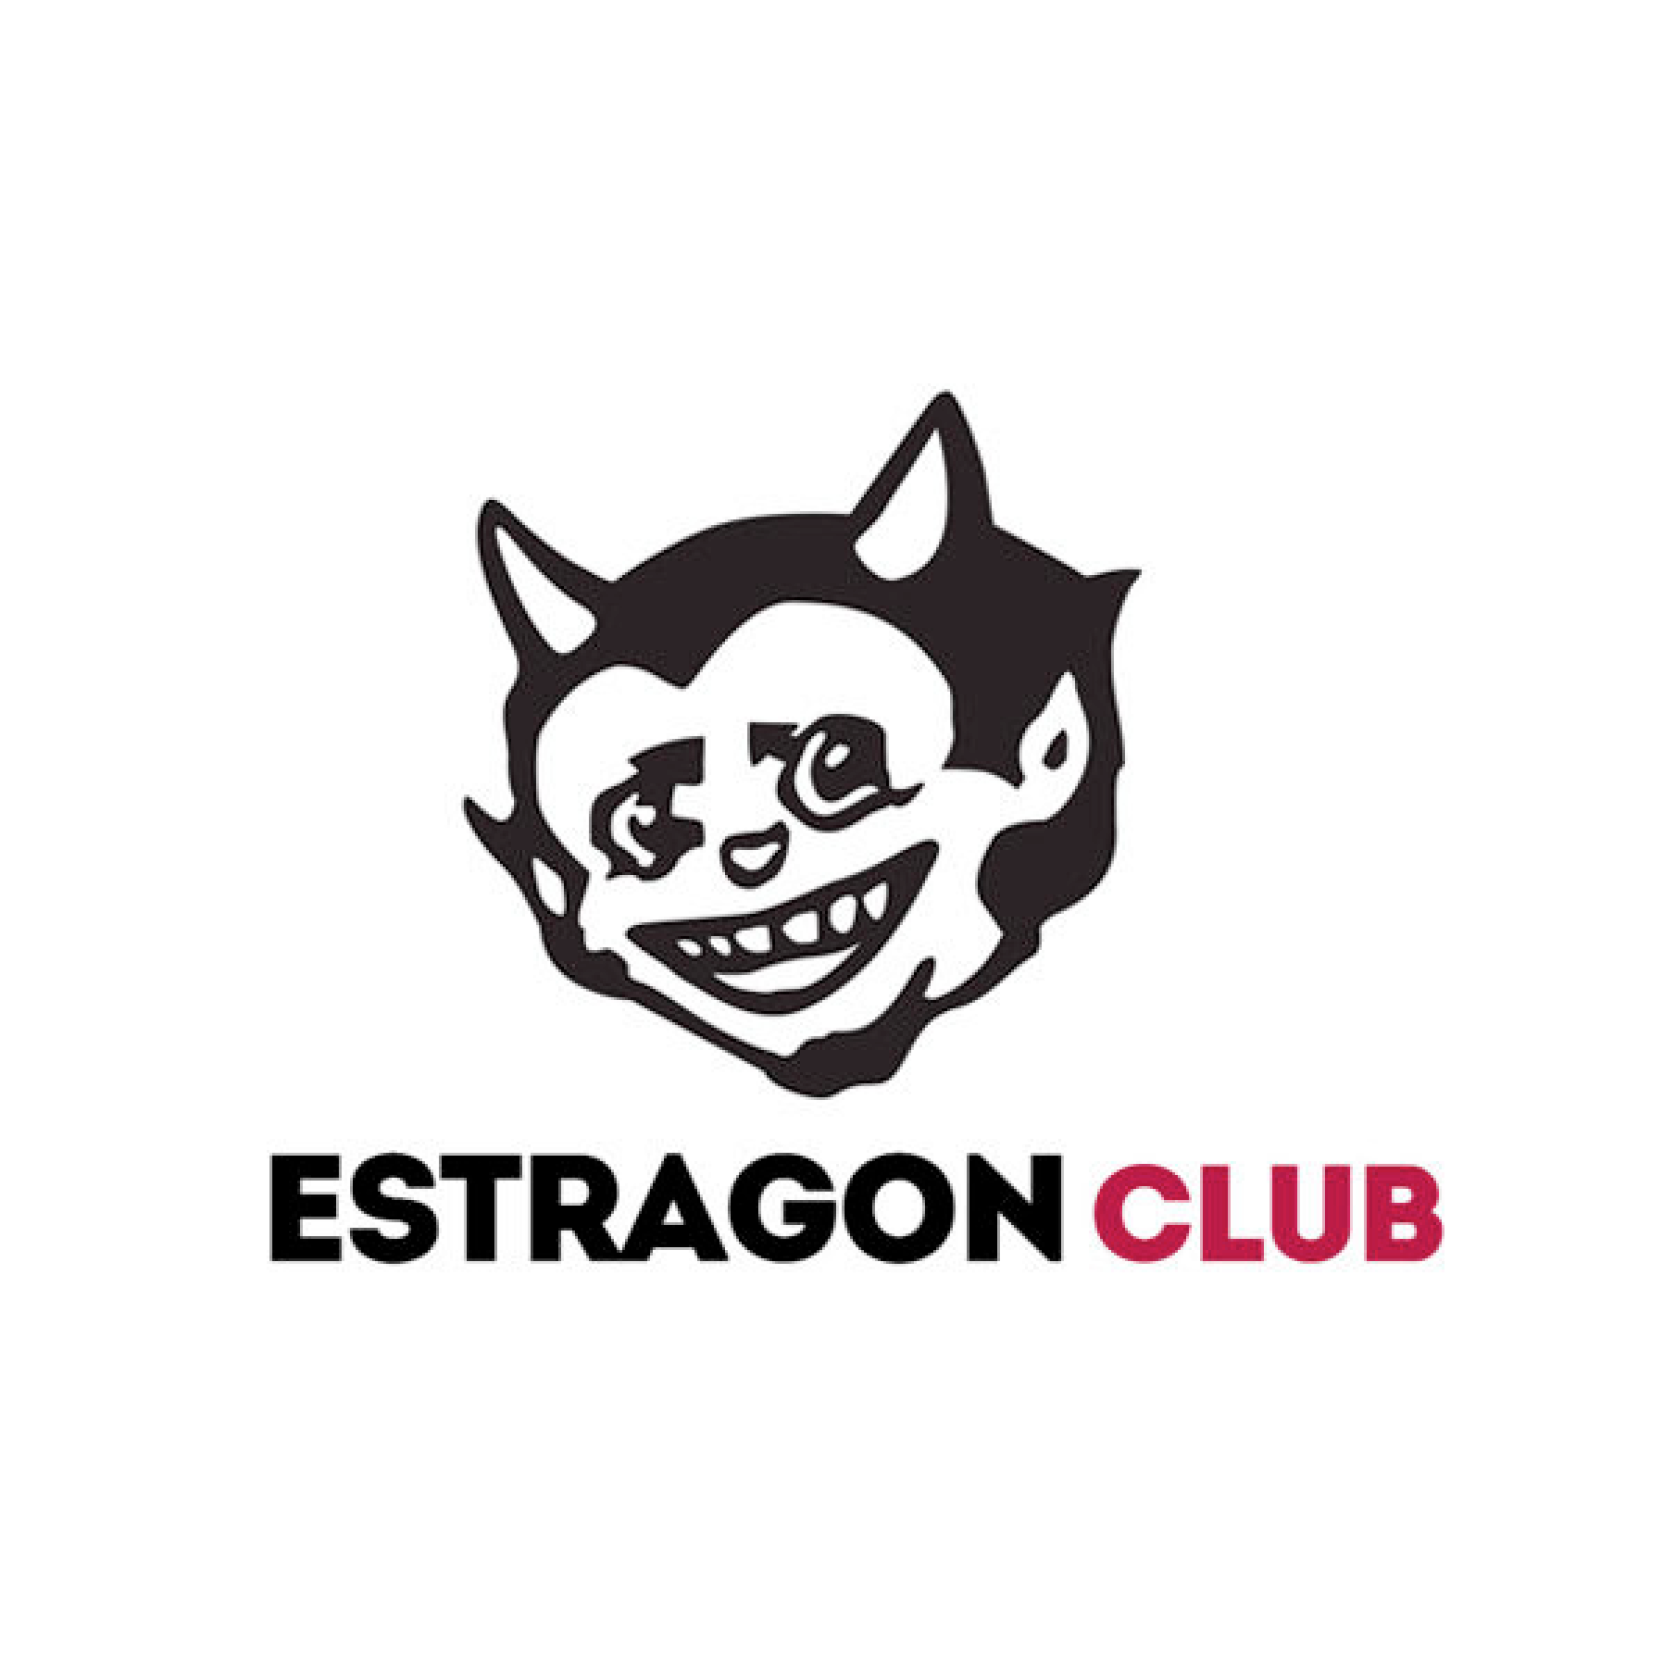 Estragon Club